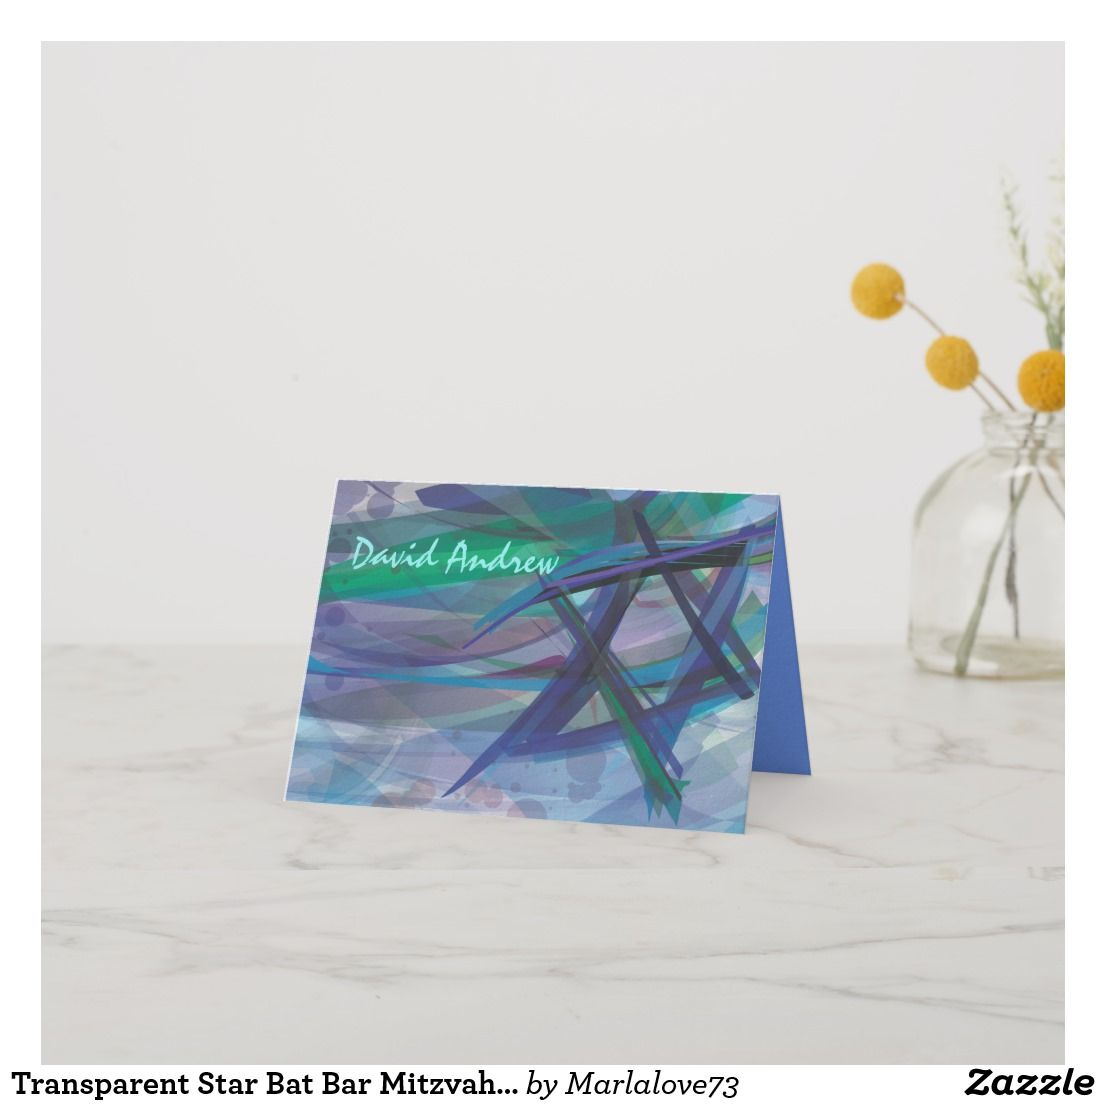 Transpa Star Bat Bar Mitzvah Thank You Card Invitations Ideas Themes For S Parties Modern Unique Creative Pink Glitter